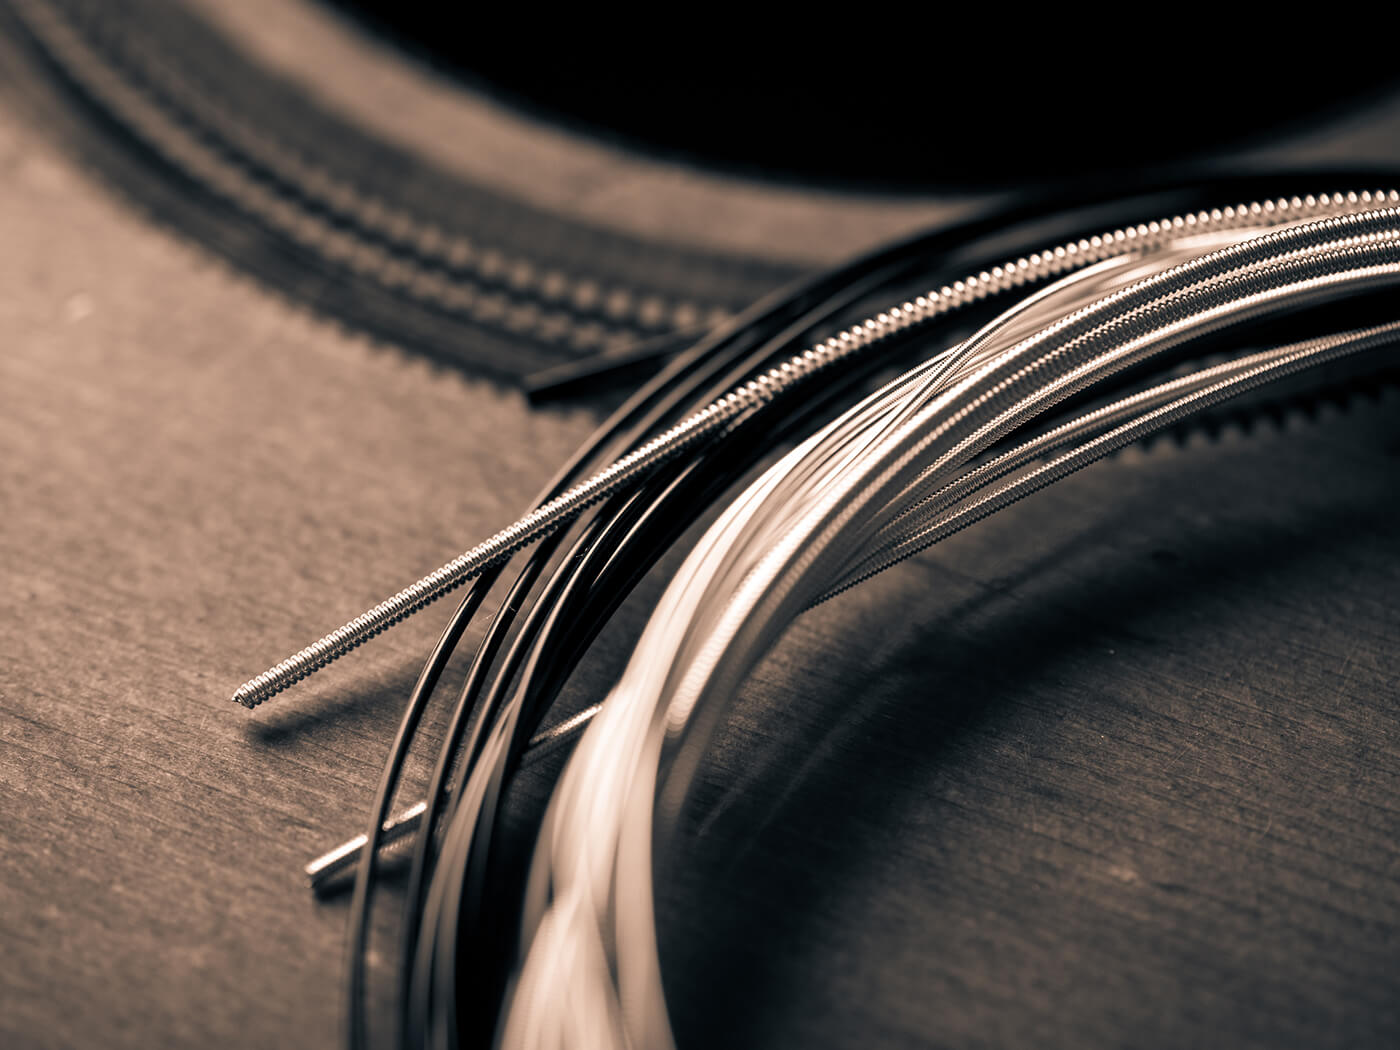 Image of strings on an acoustic guitar